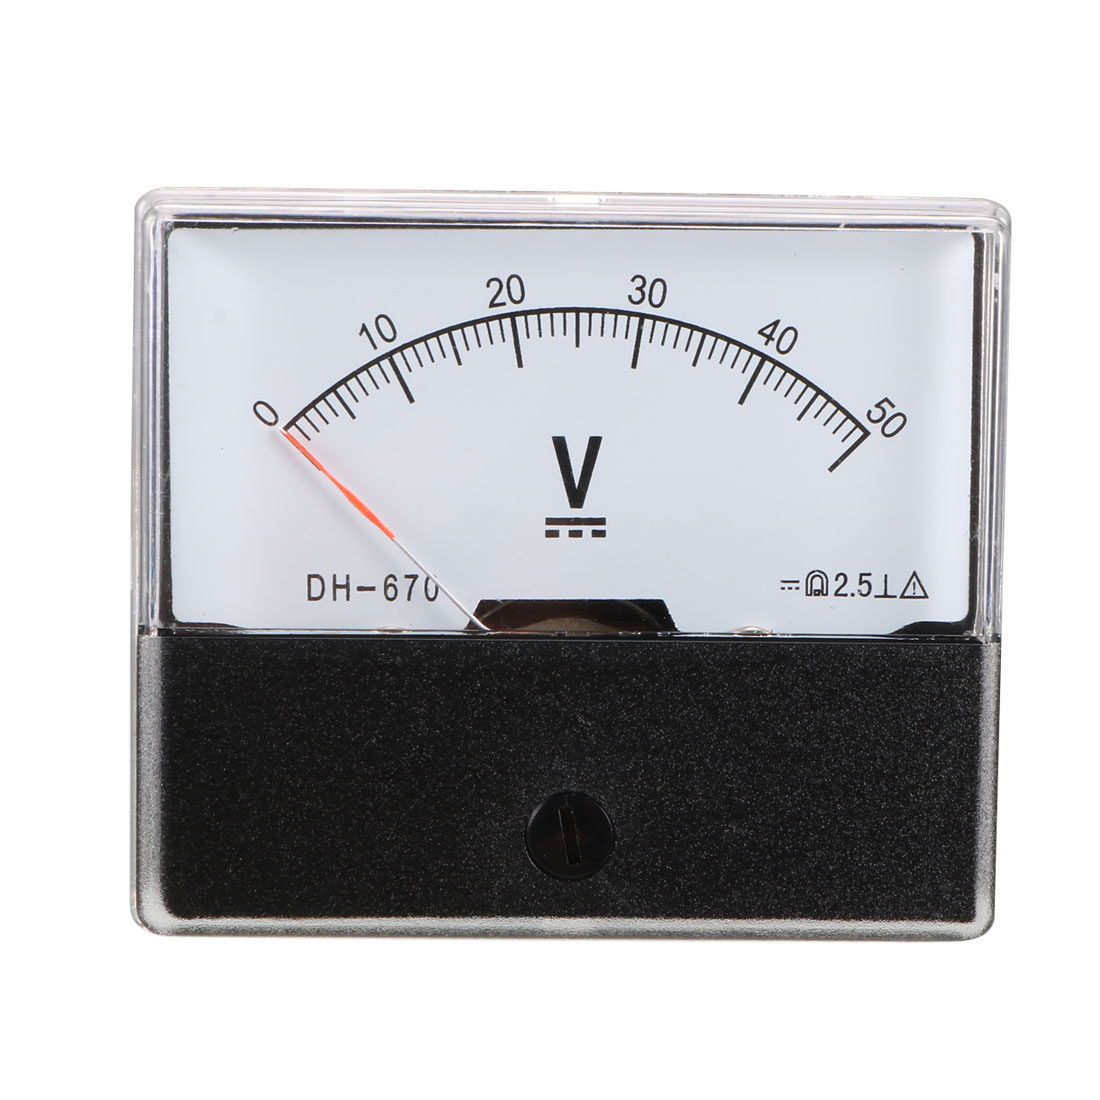 DH670 Class 2.5 Accuracy DC 0-50V Analog Panel Meter Voltmeter Gauge